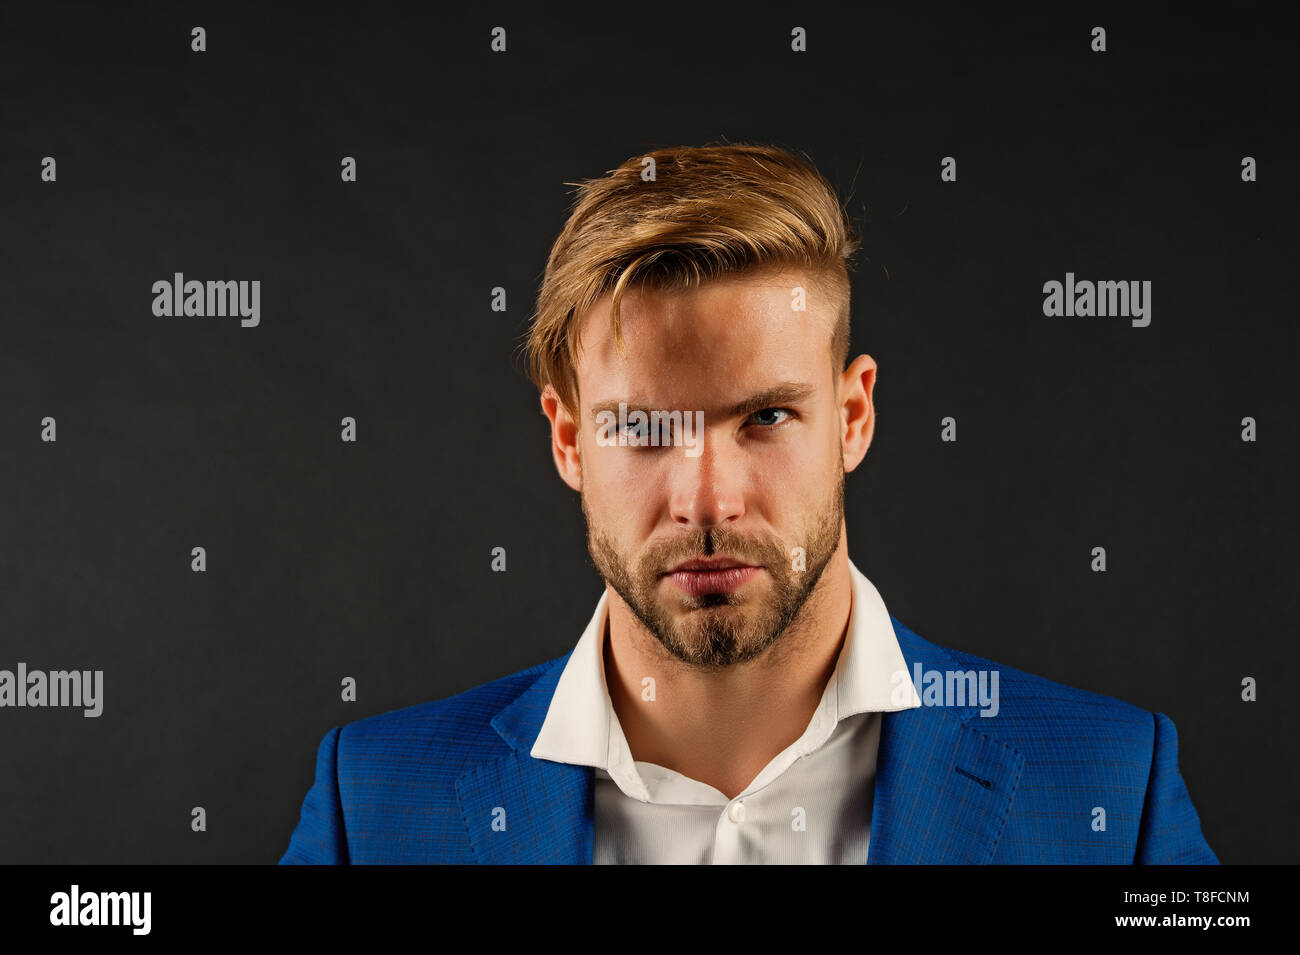 Feeling stressed after hard working day. Man bearded strict unhappy face looks untidy exhausted, dark background. Workaholic concept. Man unshaven guy looks stressed after stressful business meeting. - Stock Image